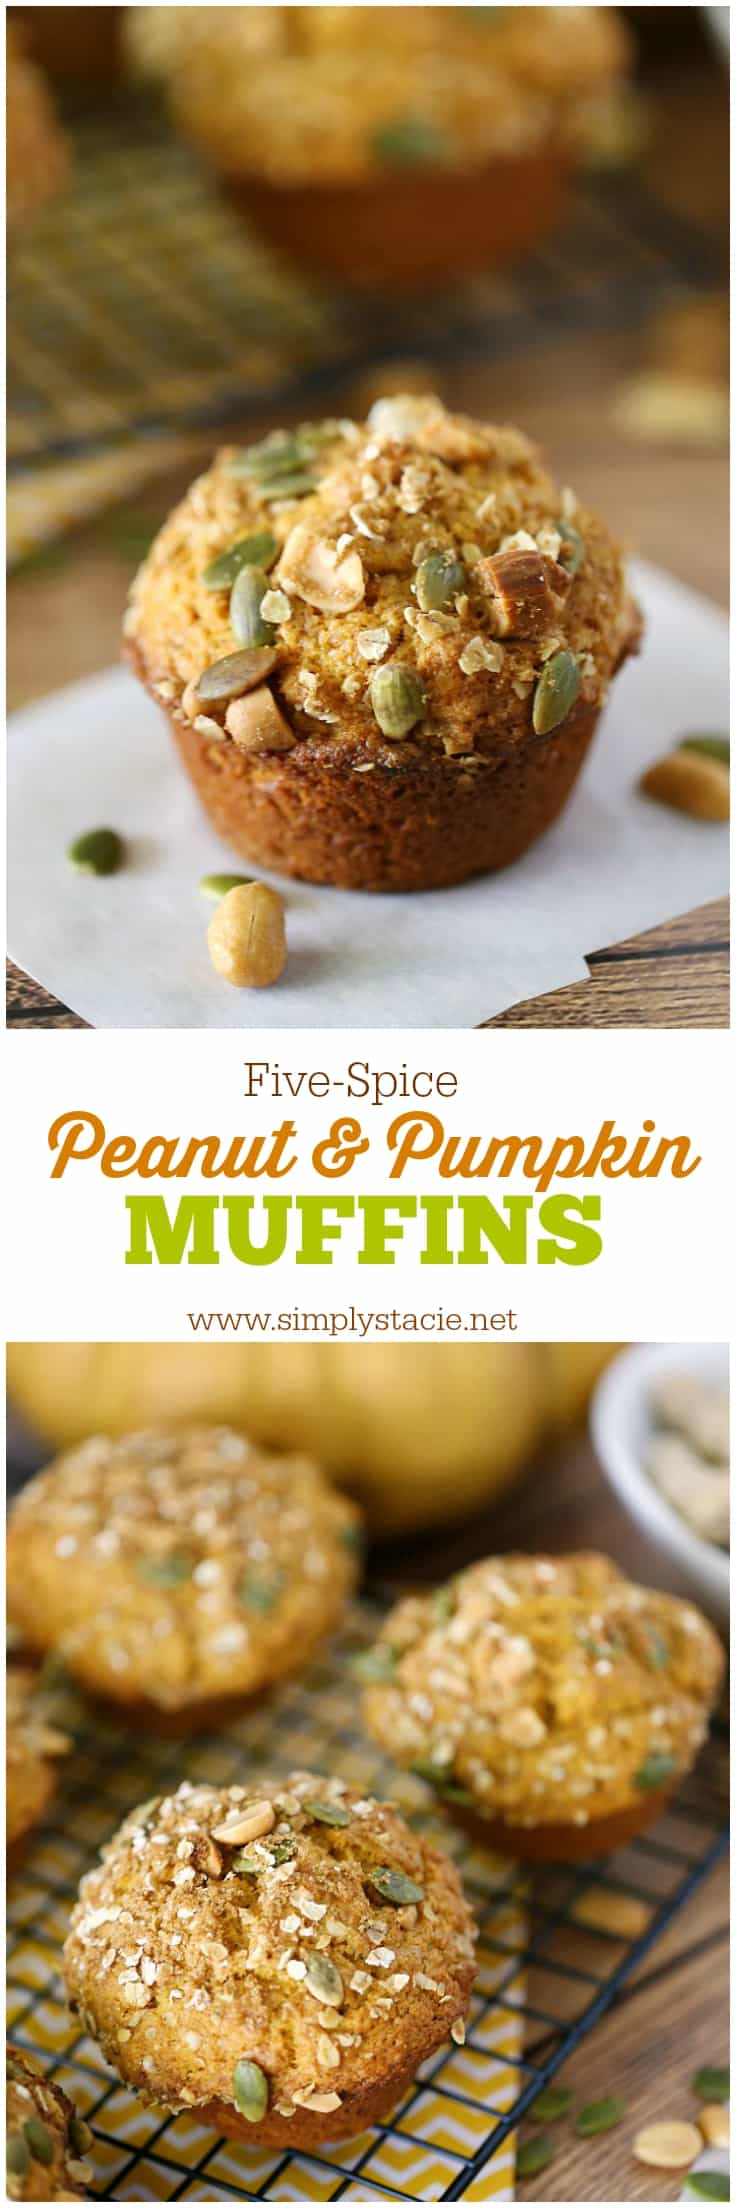 Five-Spice Peanut & Pumpkin Muffins - Incredibly moist and delicious, these muffins are easy to make and perfect for fall.